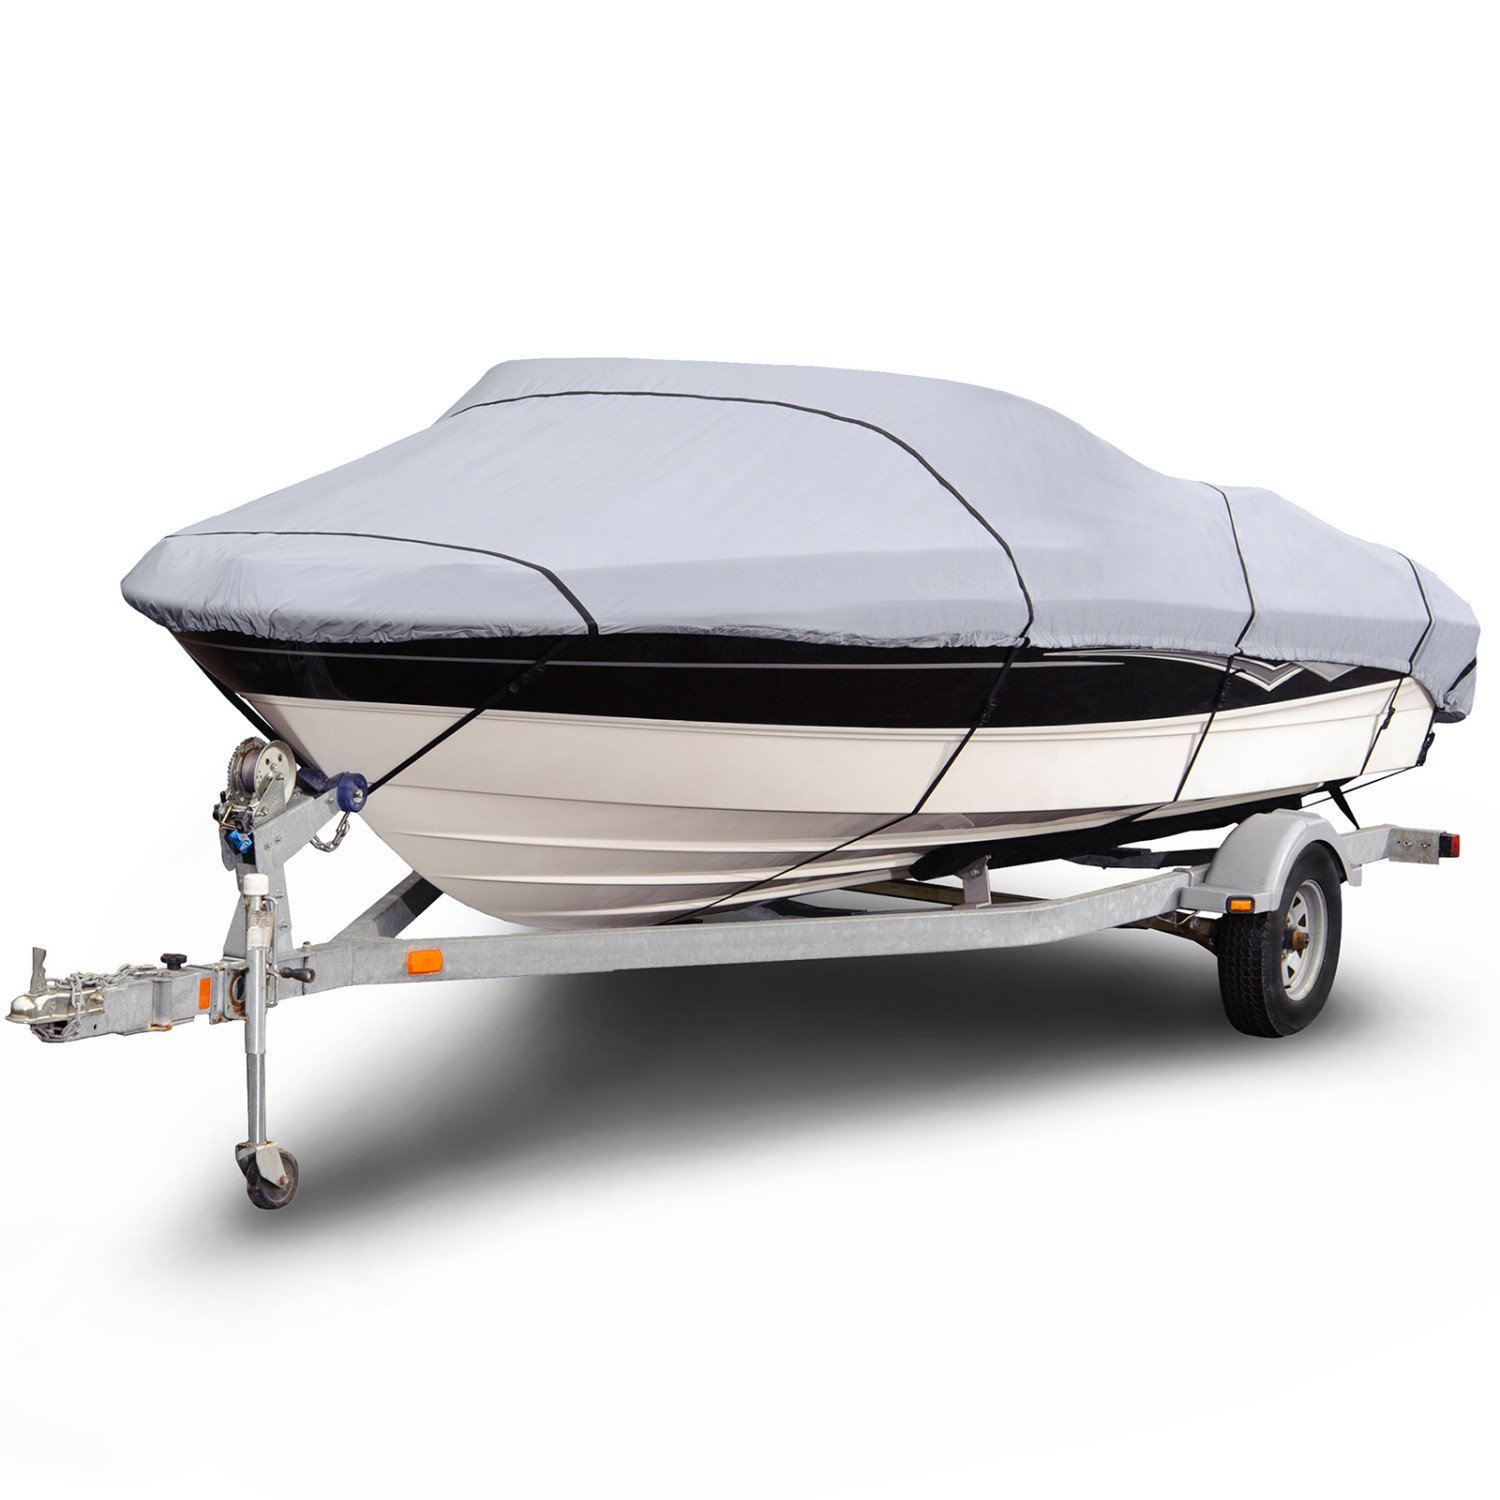 "Budge B-1201-X3 1200 Denier V-Hull Runabout Boat Cover Gray 14'-16' Long (Beam Width Up to 90"") Waterproof, Heavy Duty, UV Resistant"